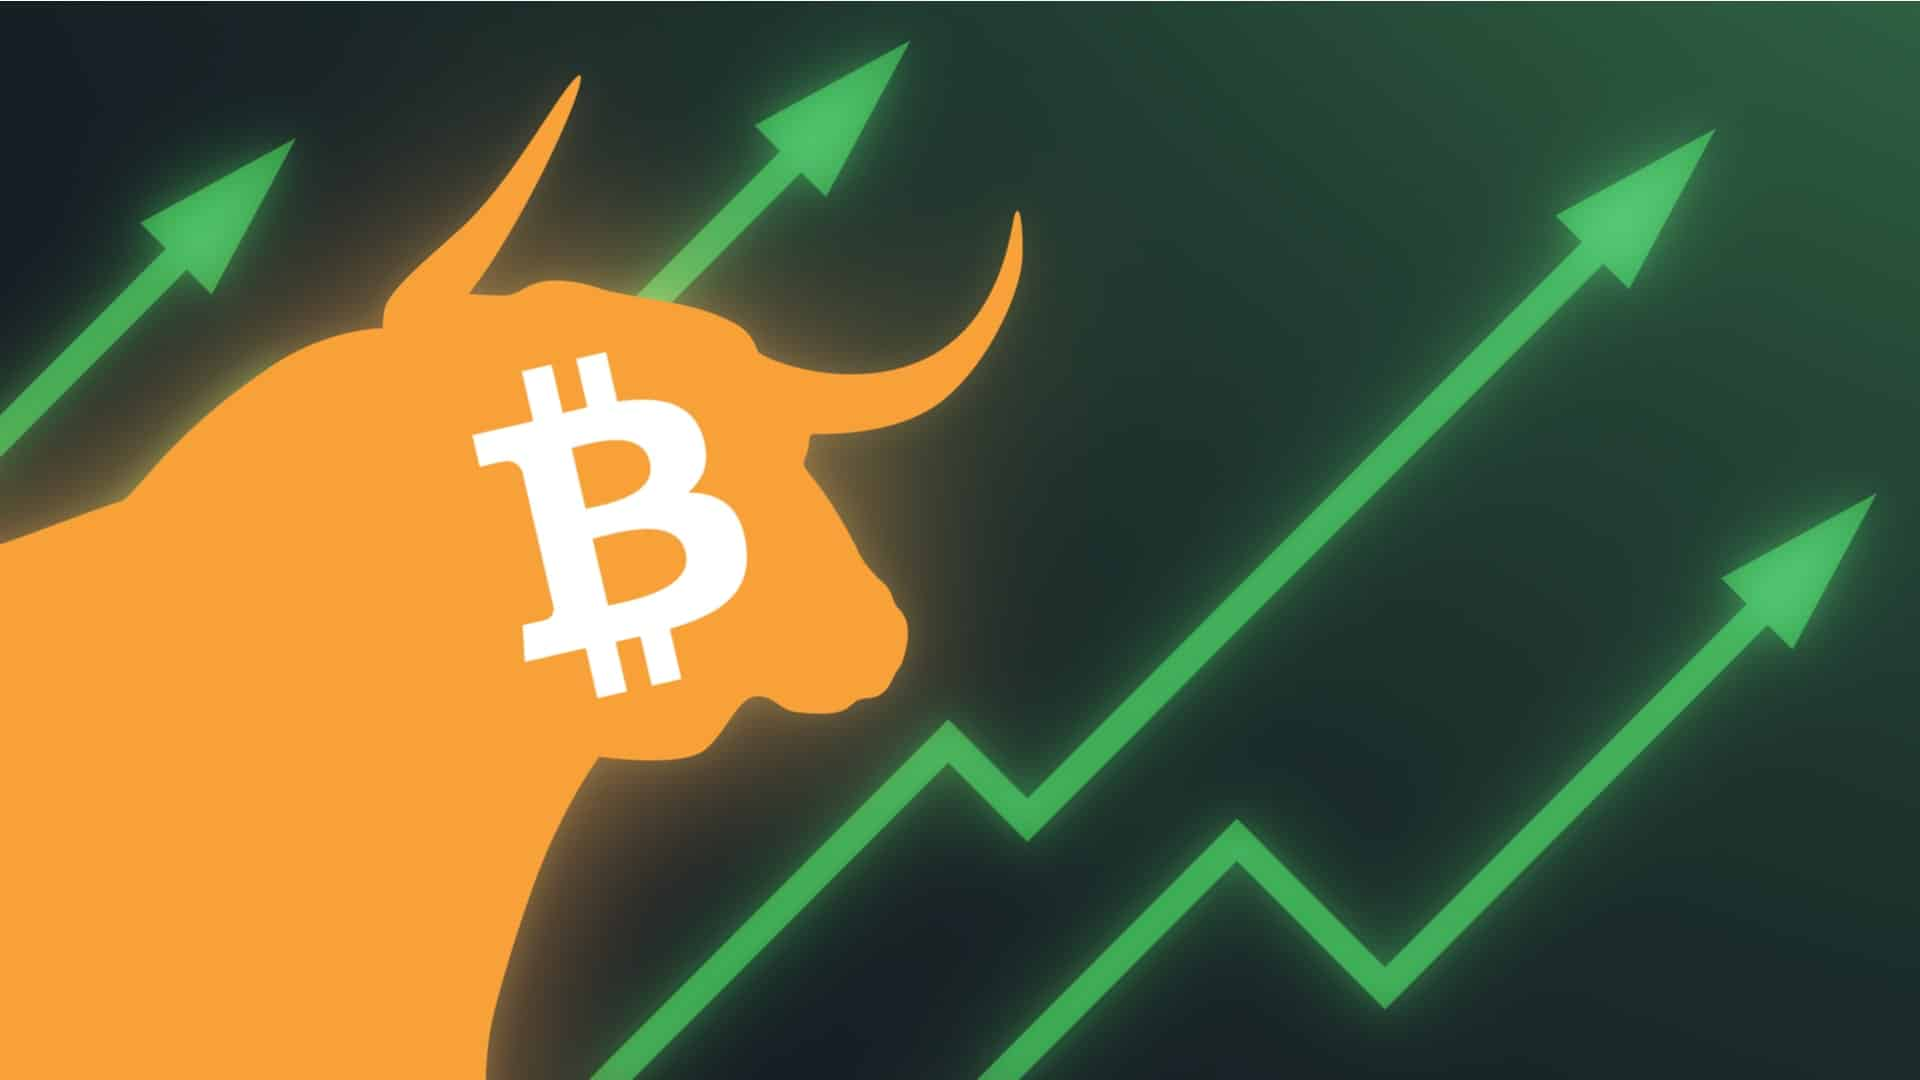 BTC analysis – the price has reached $ 60,000 for a while and the growth is still not over